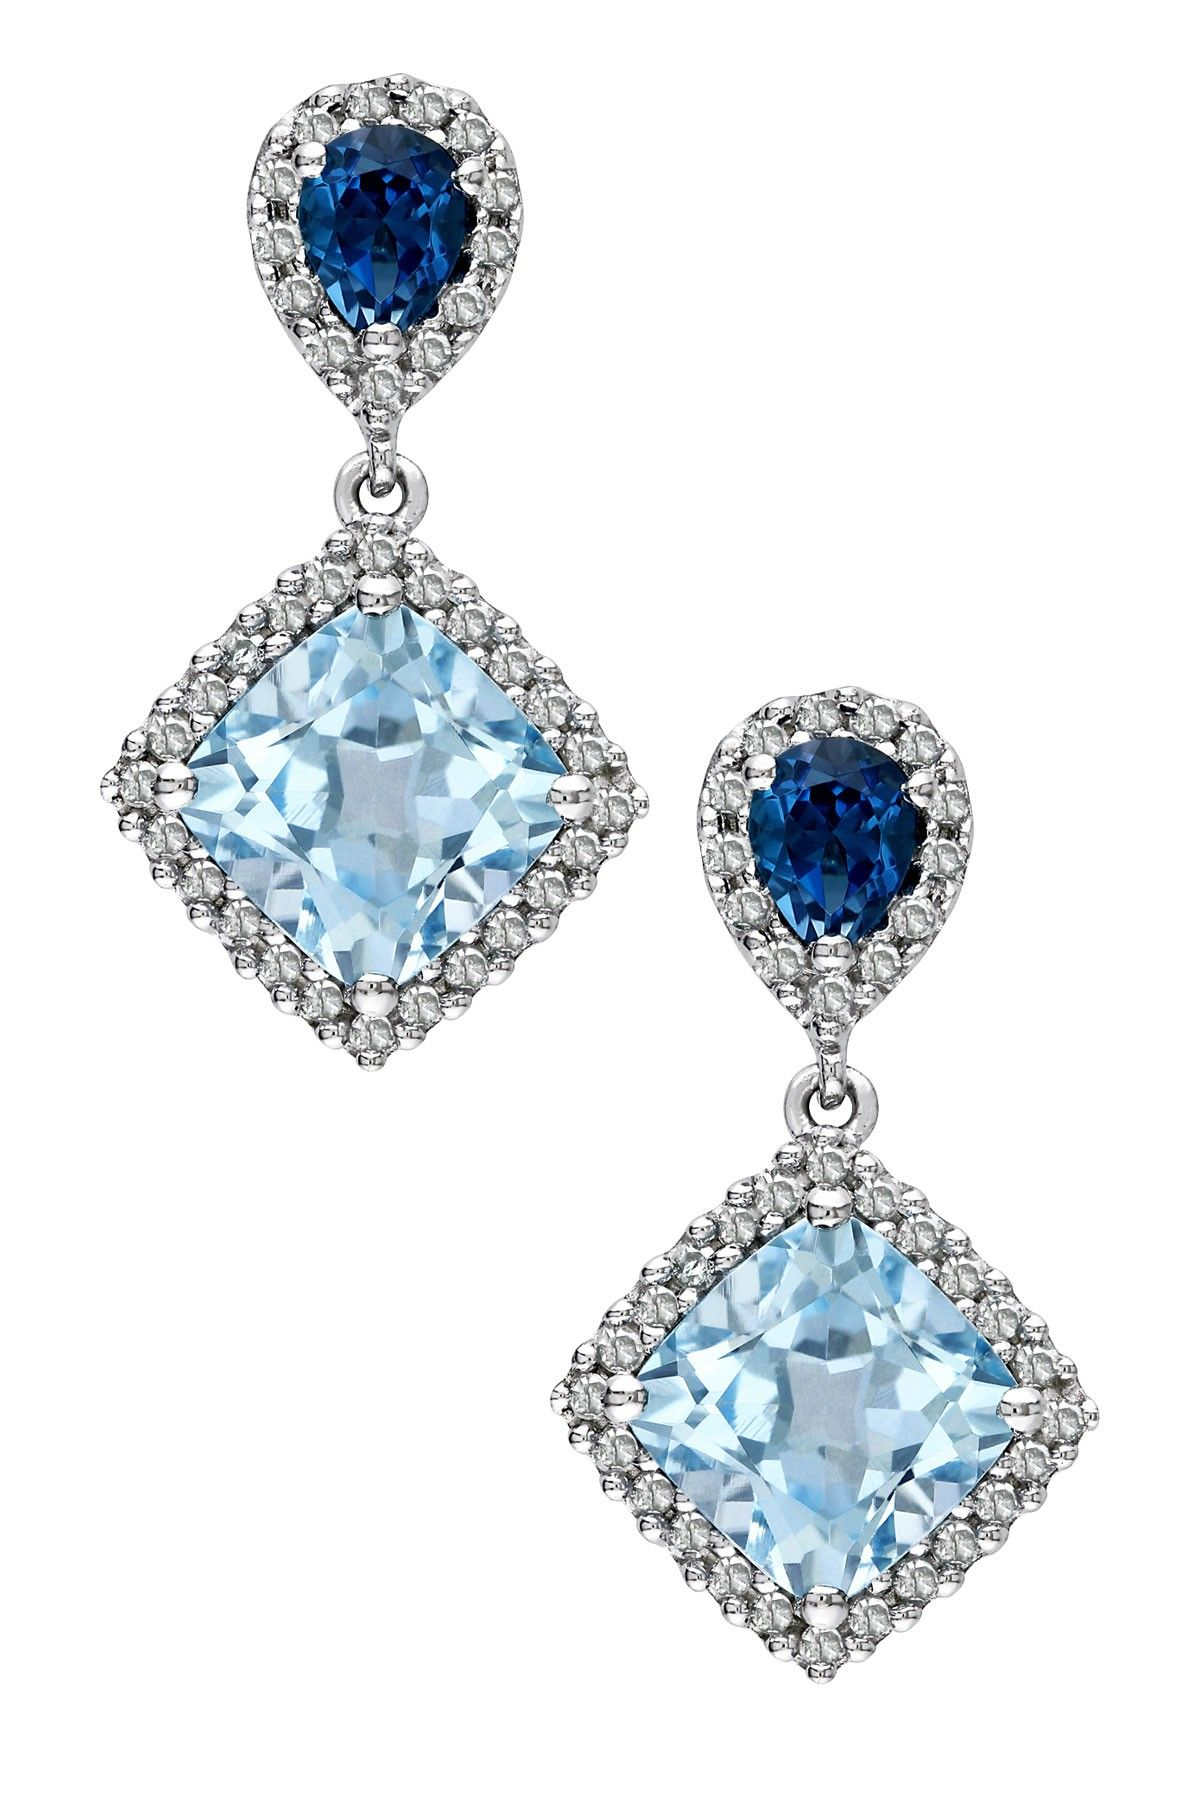 rose with earrings r blue natural shape htm french topaz clips clip earring pear solid carat gold p